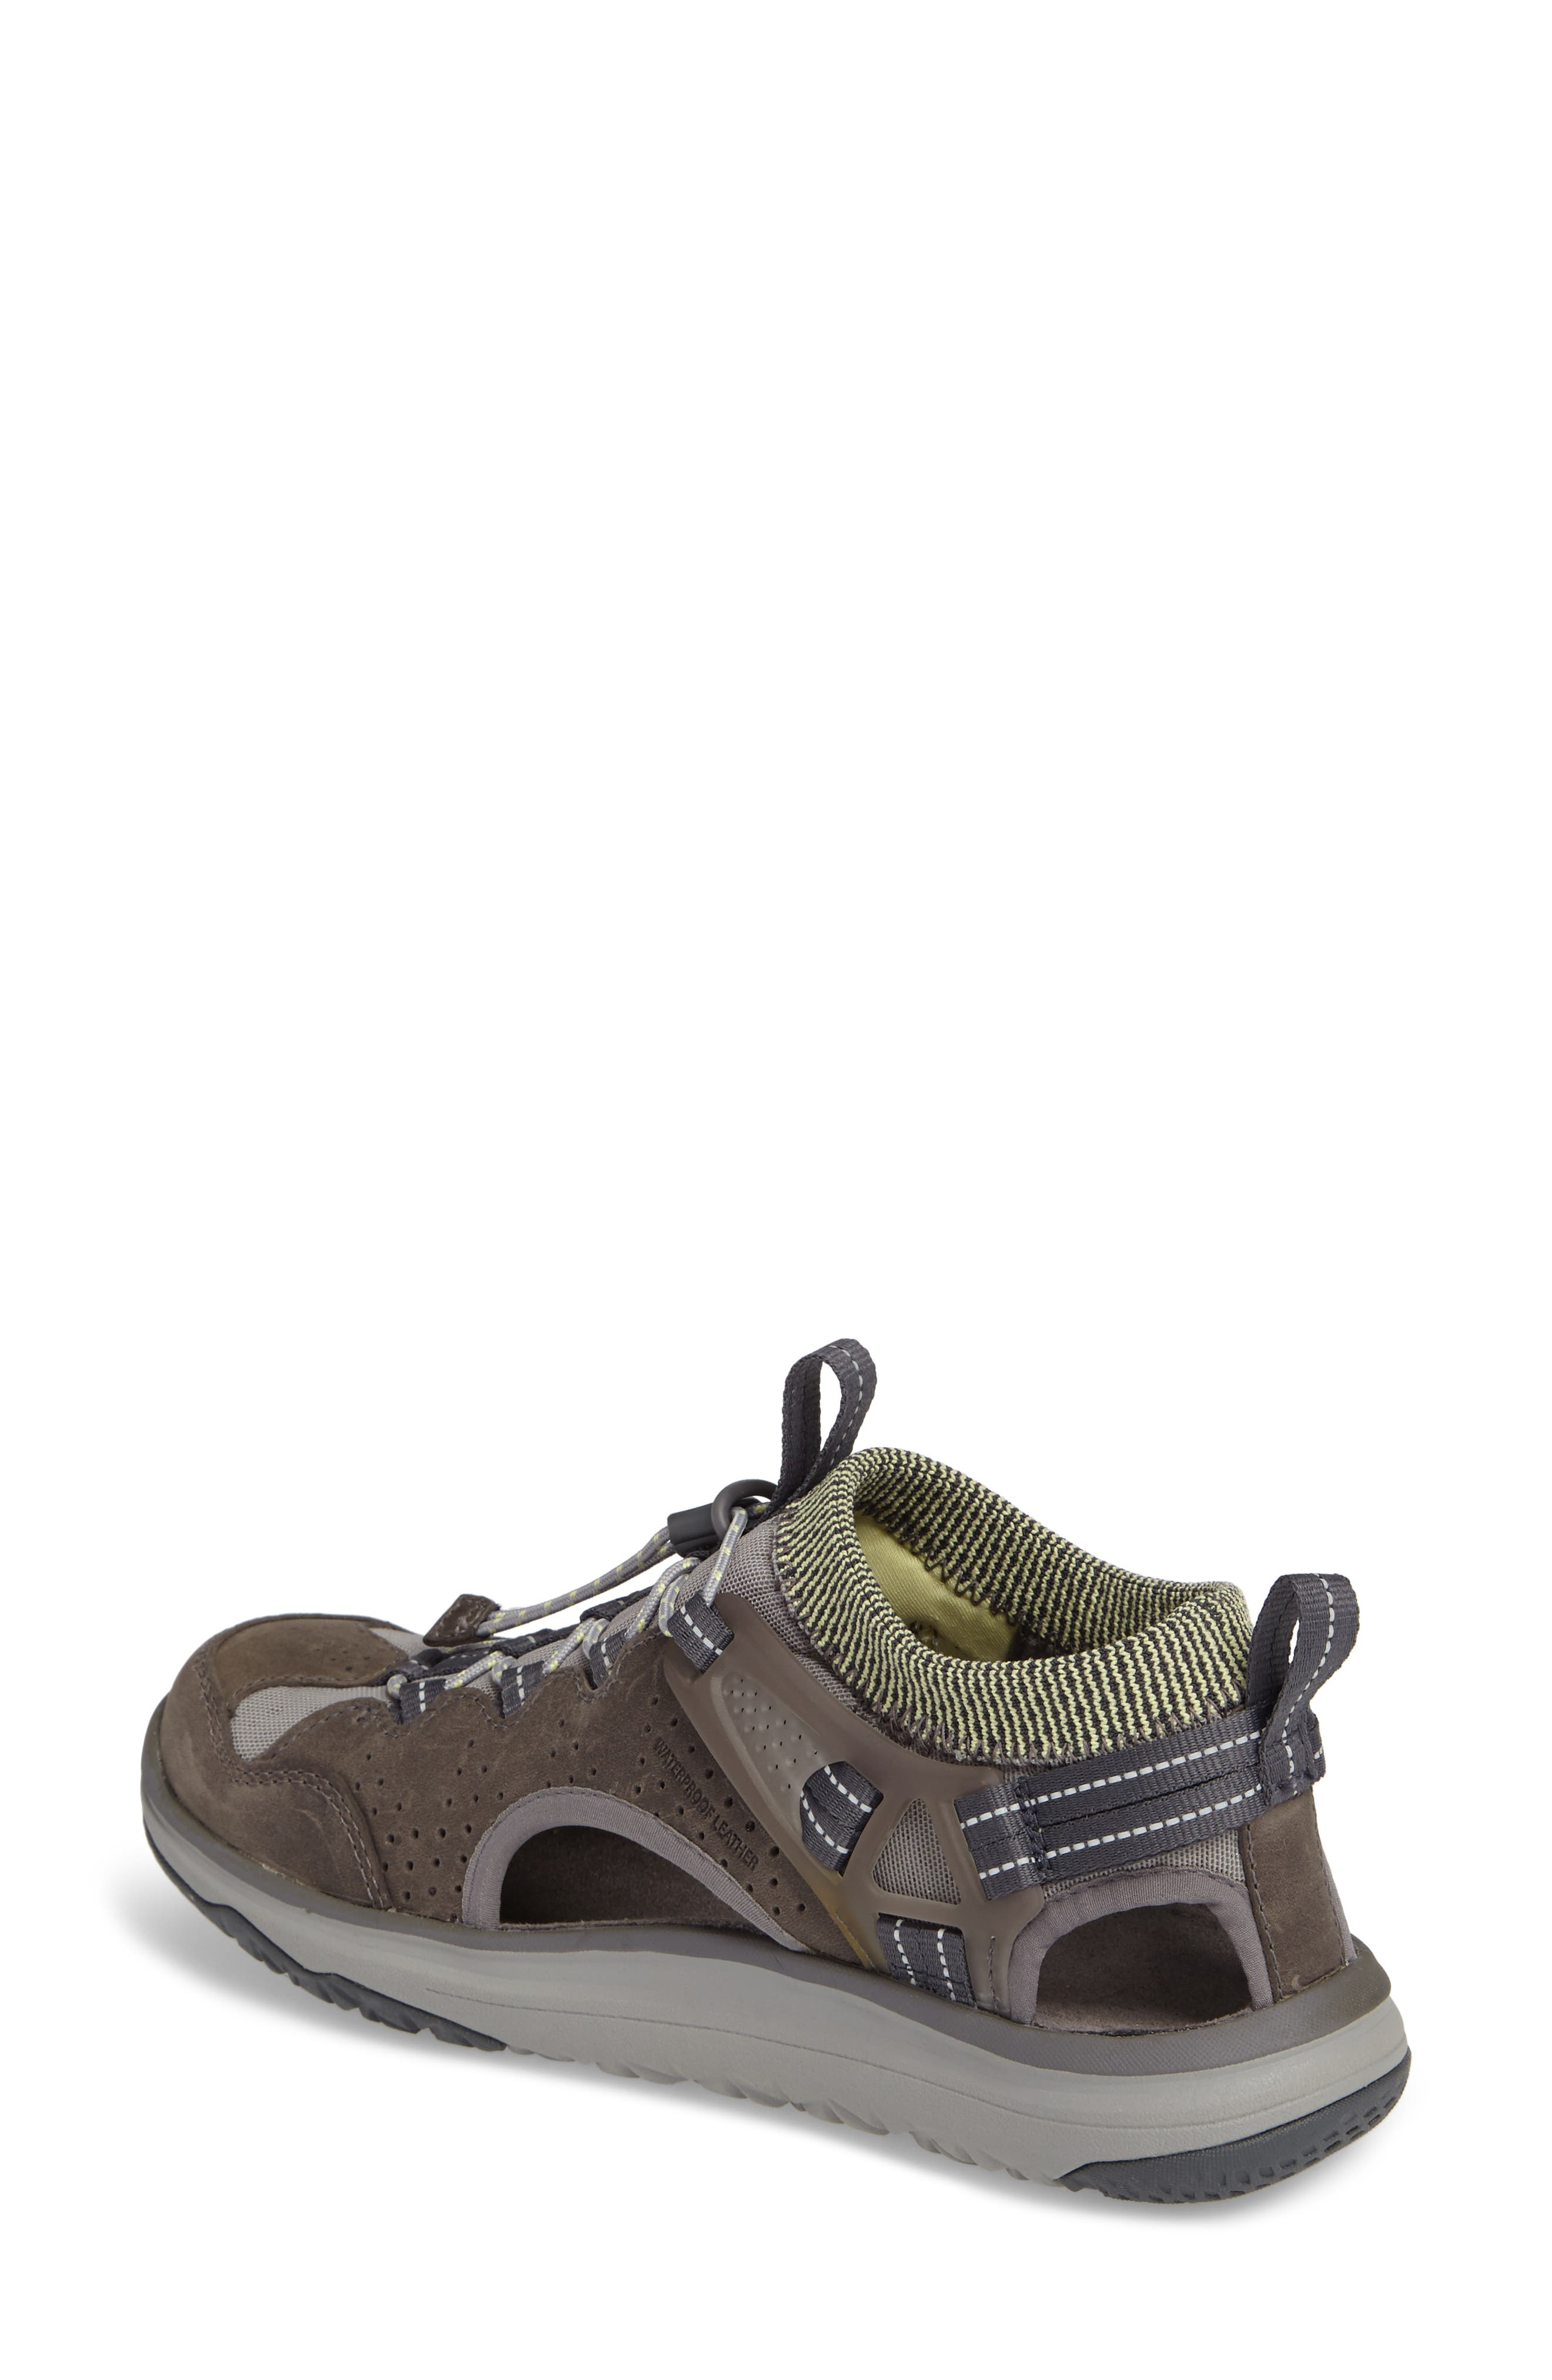 Terra Float Travel Sandal,                             Alternate thumbnail 5, color,